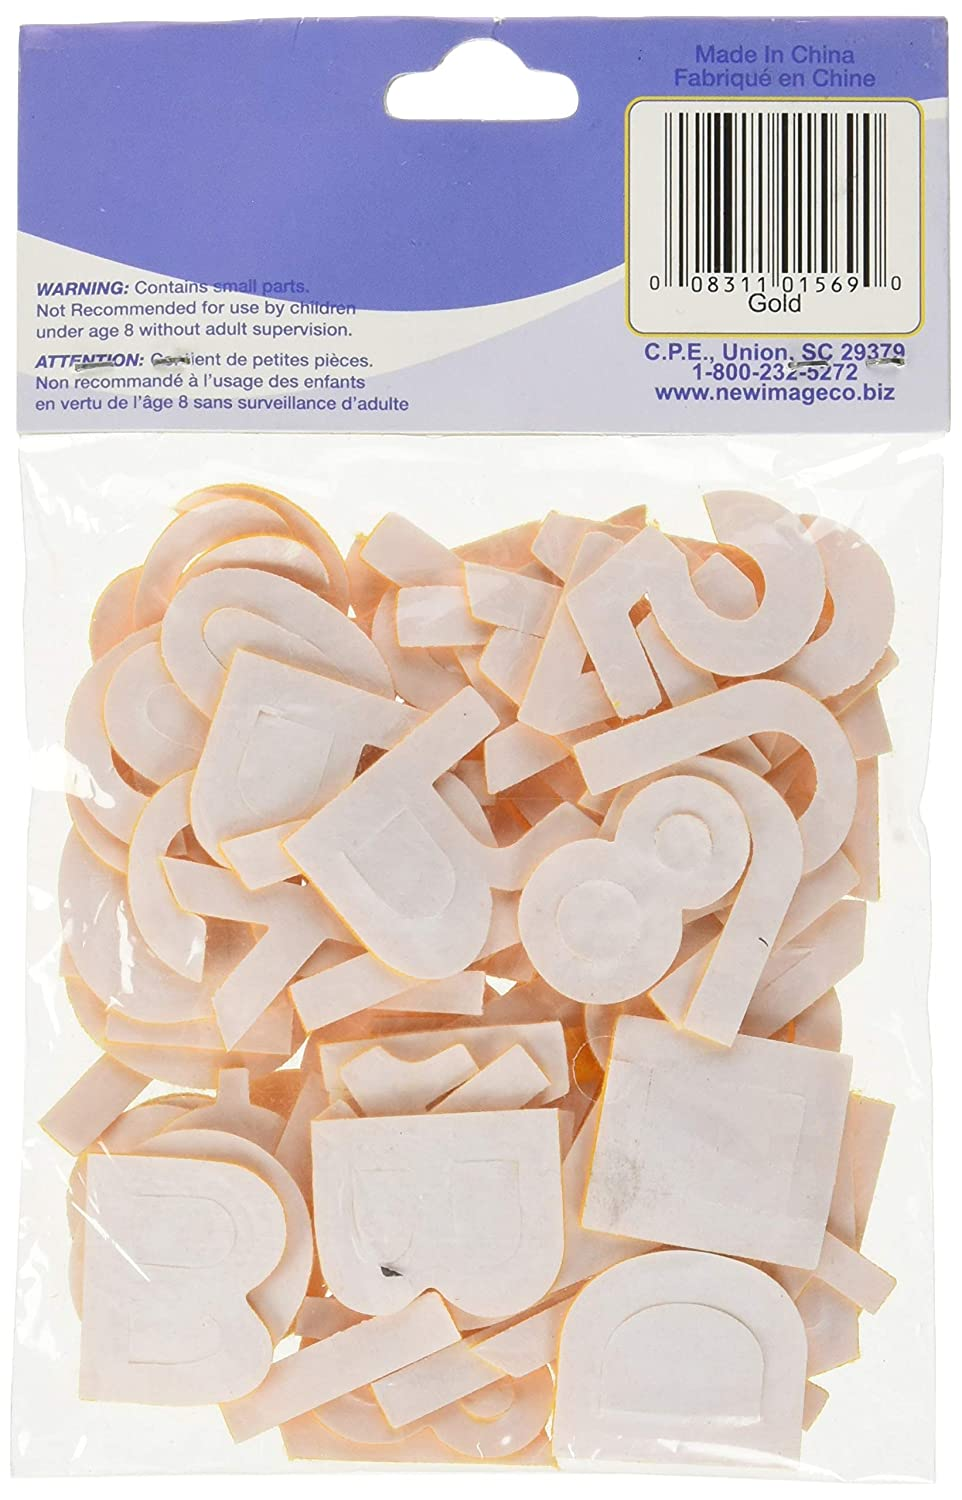 Gold 1-Inch Numbers and Letters 80-Pack New Image Group 1NL-1569 Craft Supplies Stick It Felt